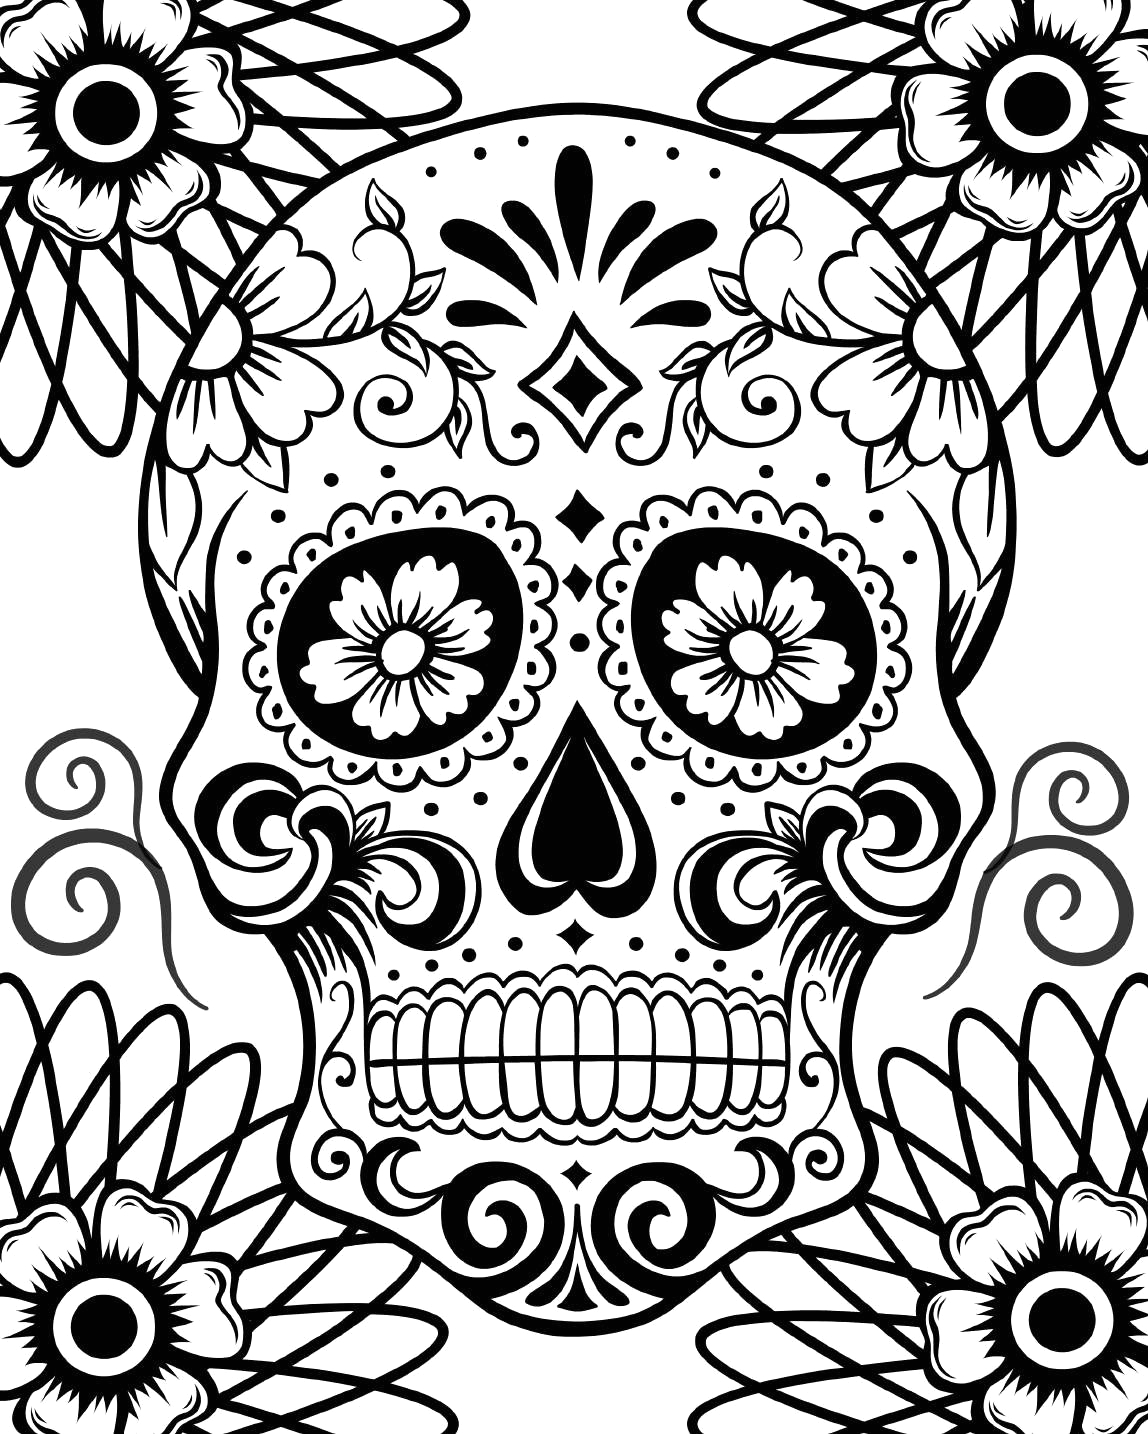 Free Coloring Pages Day Of the Dead Free Printable Day Of the Dead Coloring Pages Best